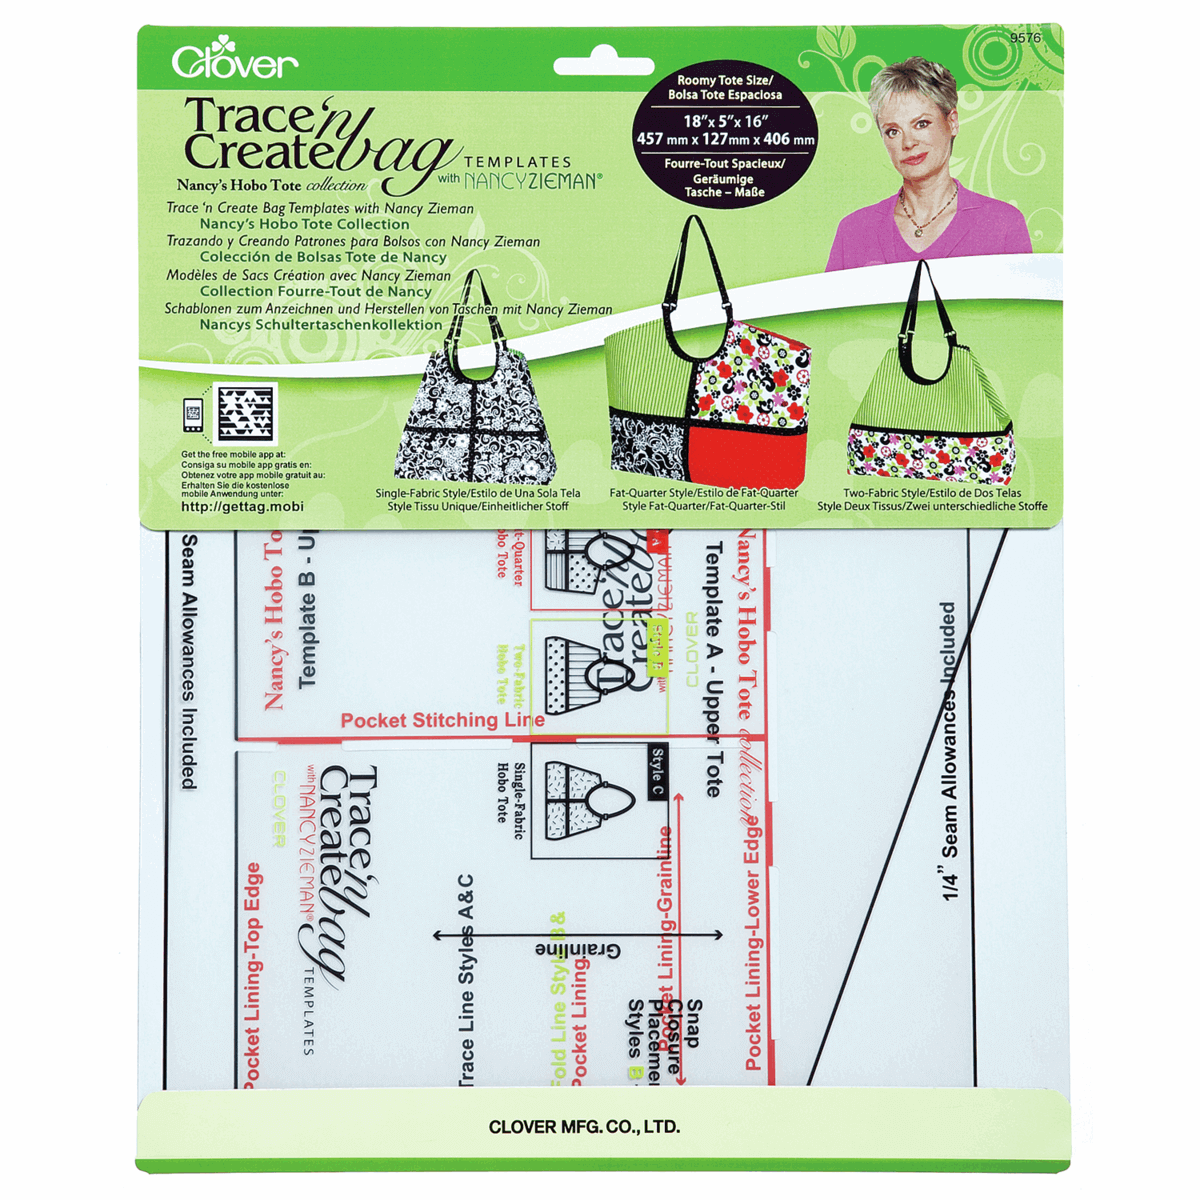 Clover Trace And Create Hobo Tote Bag Templates Handbag Strap Accessories Craft Create-a-Strap 25mm CL9502